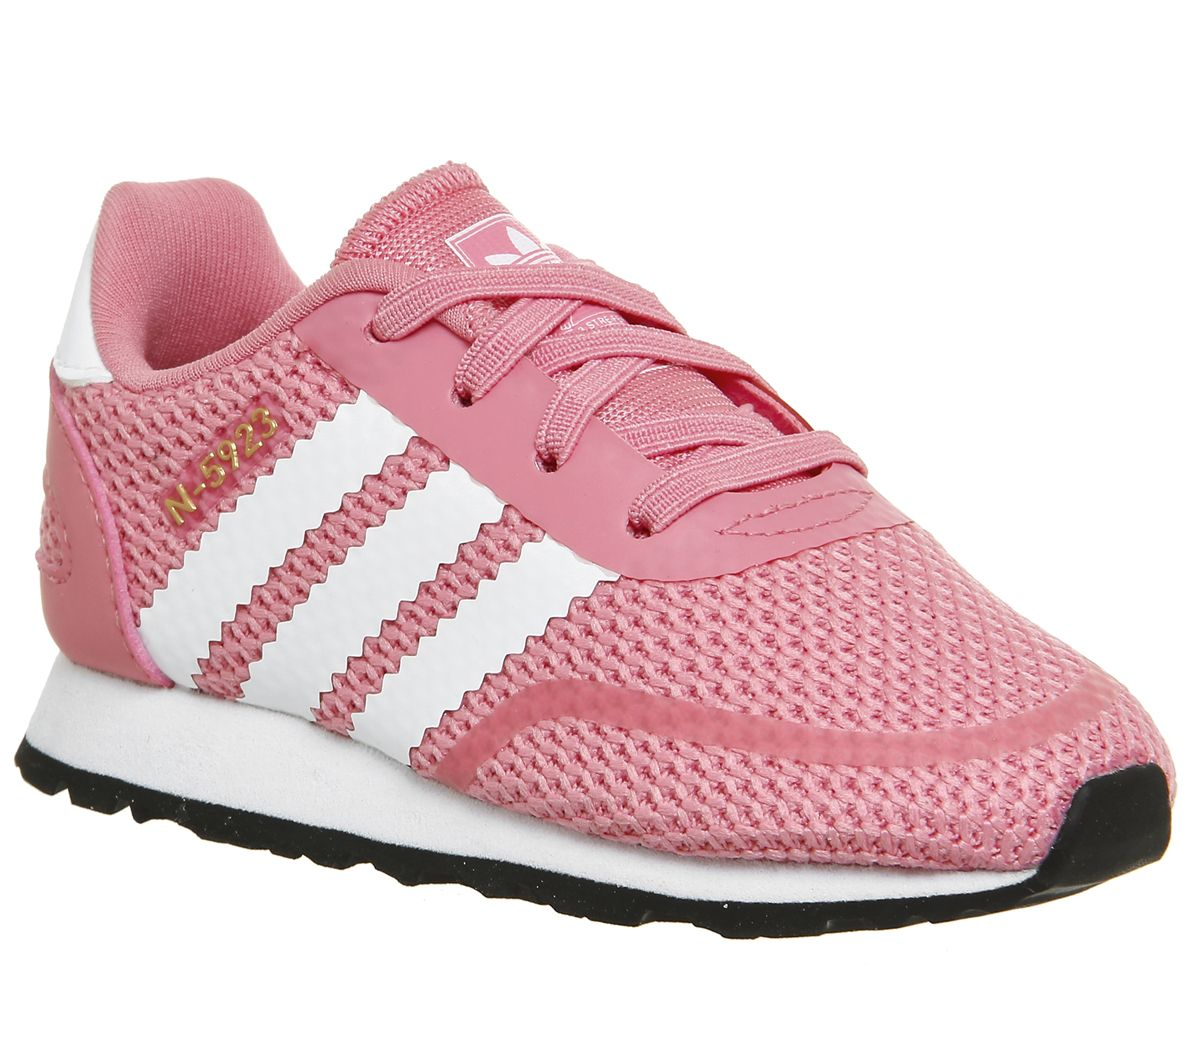 the latest 4635b 7403f adidas N-5923 Infant Trainers Chalk Pink - Unisex